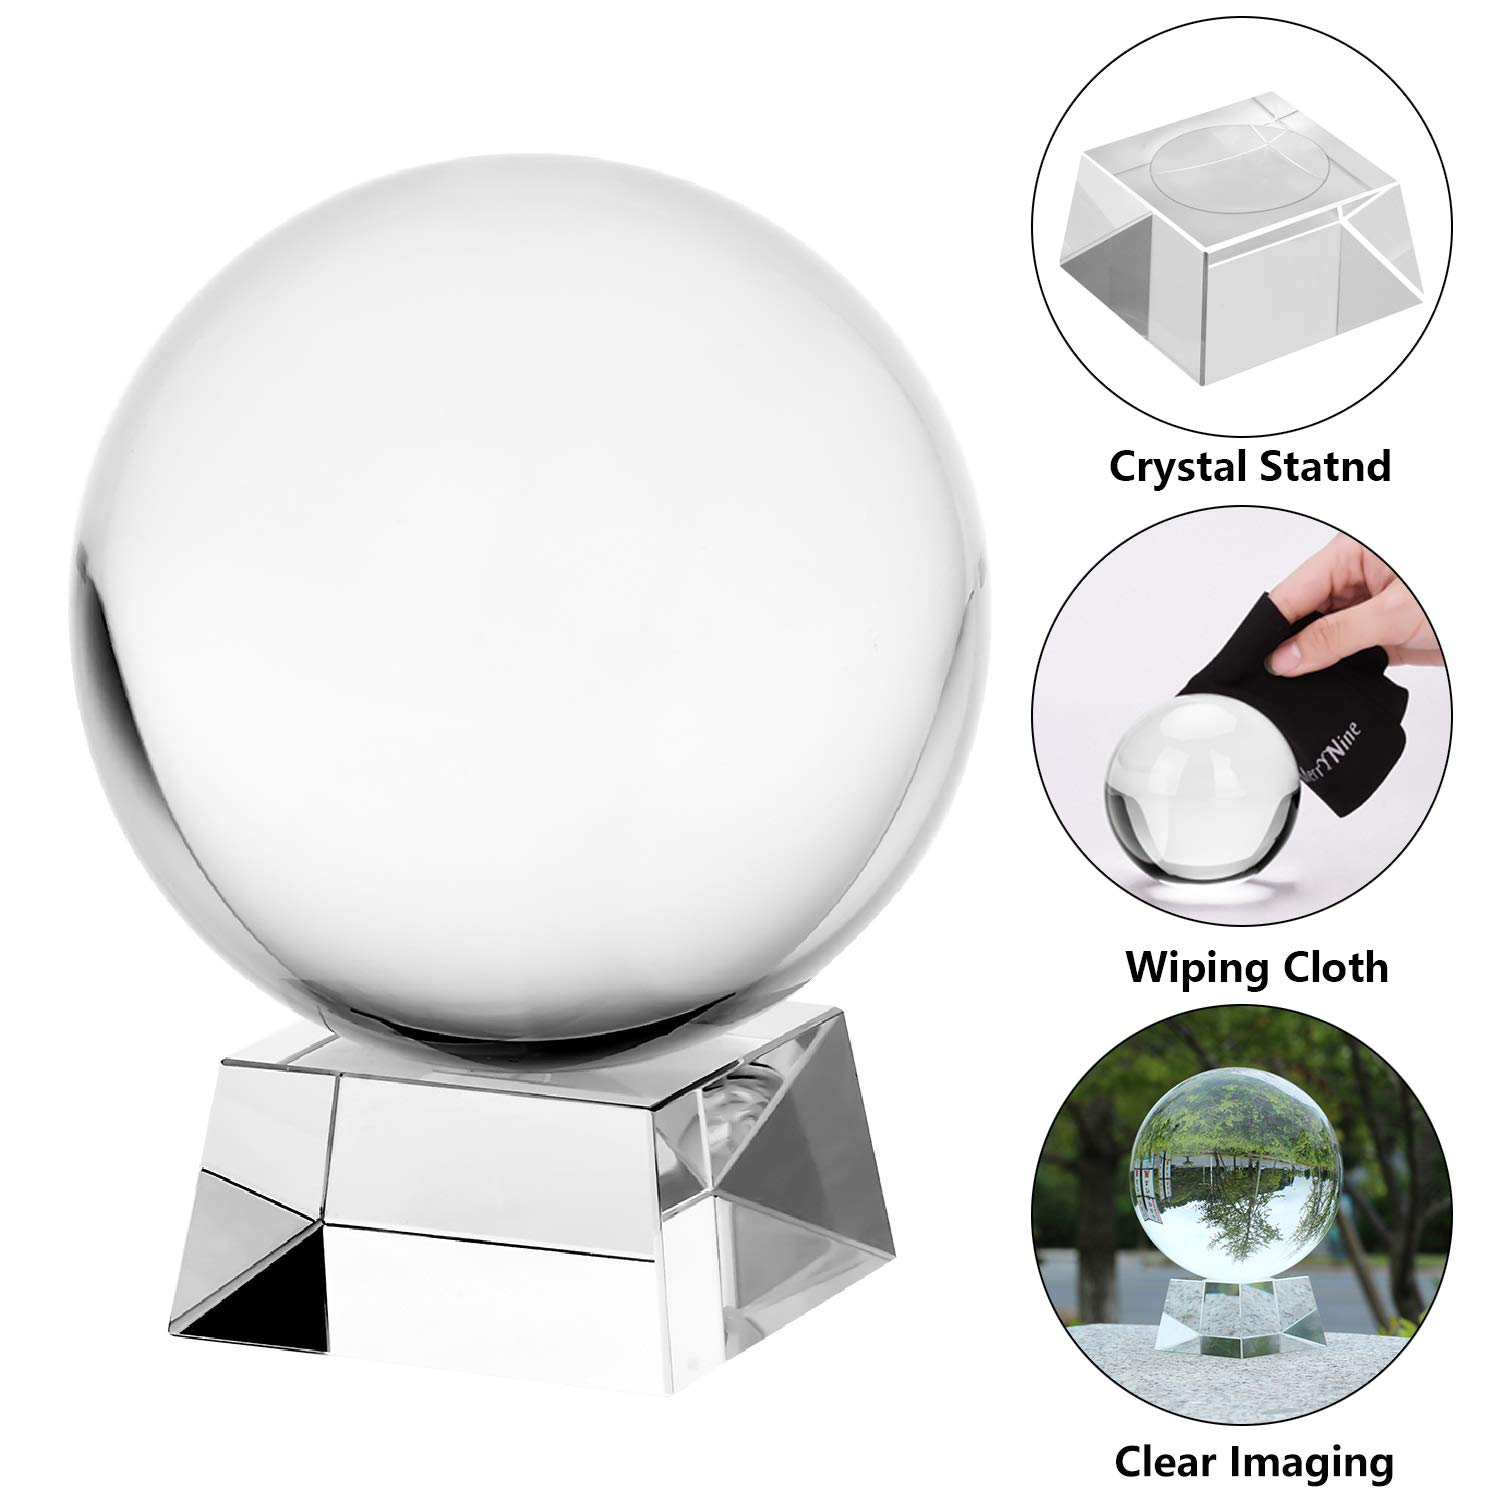 Decorative and Photography Accessory MerryNine Professional Crystal Ball Photograph K9 Crystal Suncatchers Ball with Trapezoid Crystal Stand 110mm//4.3, K9, with Crystal Stand